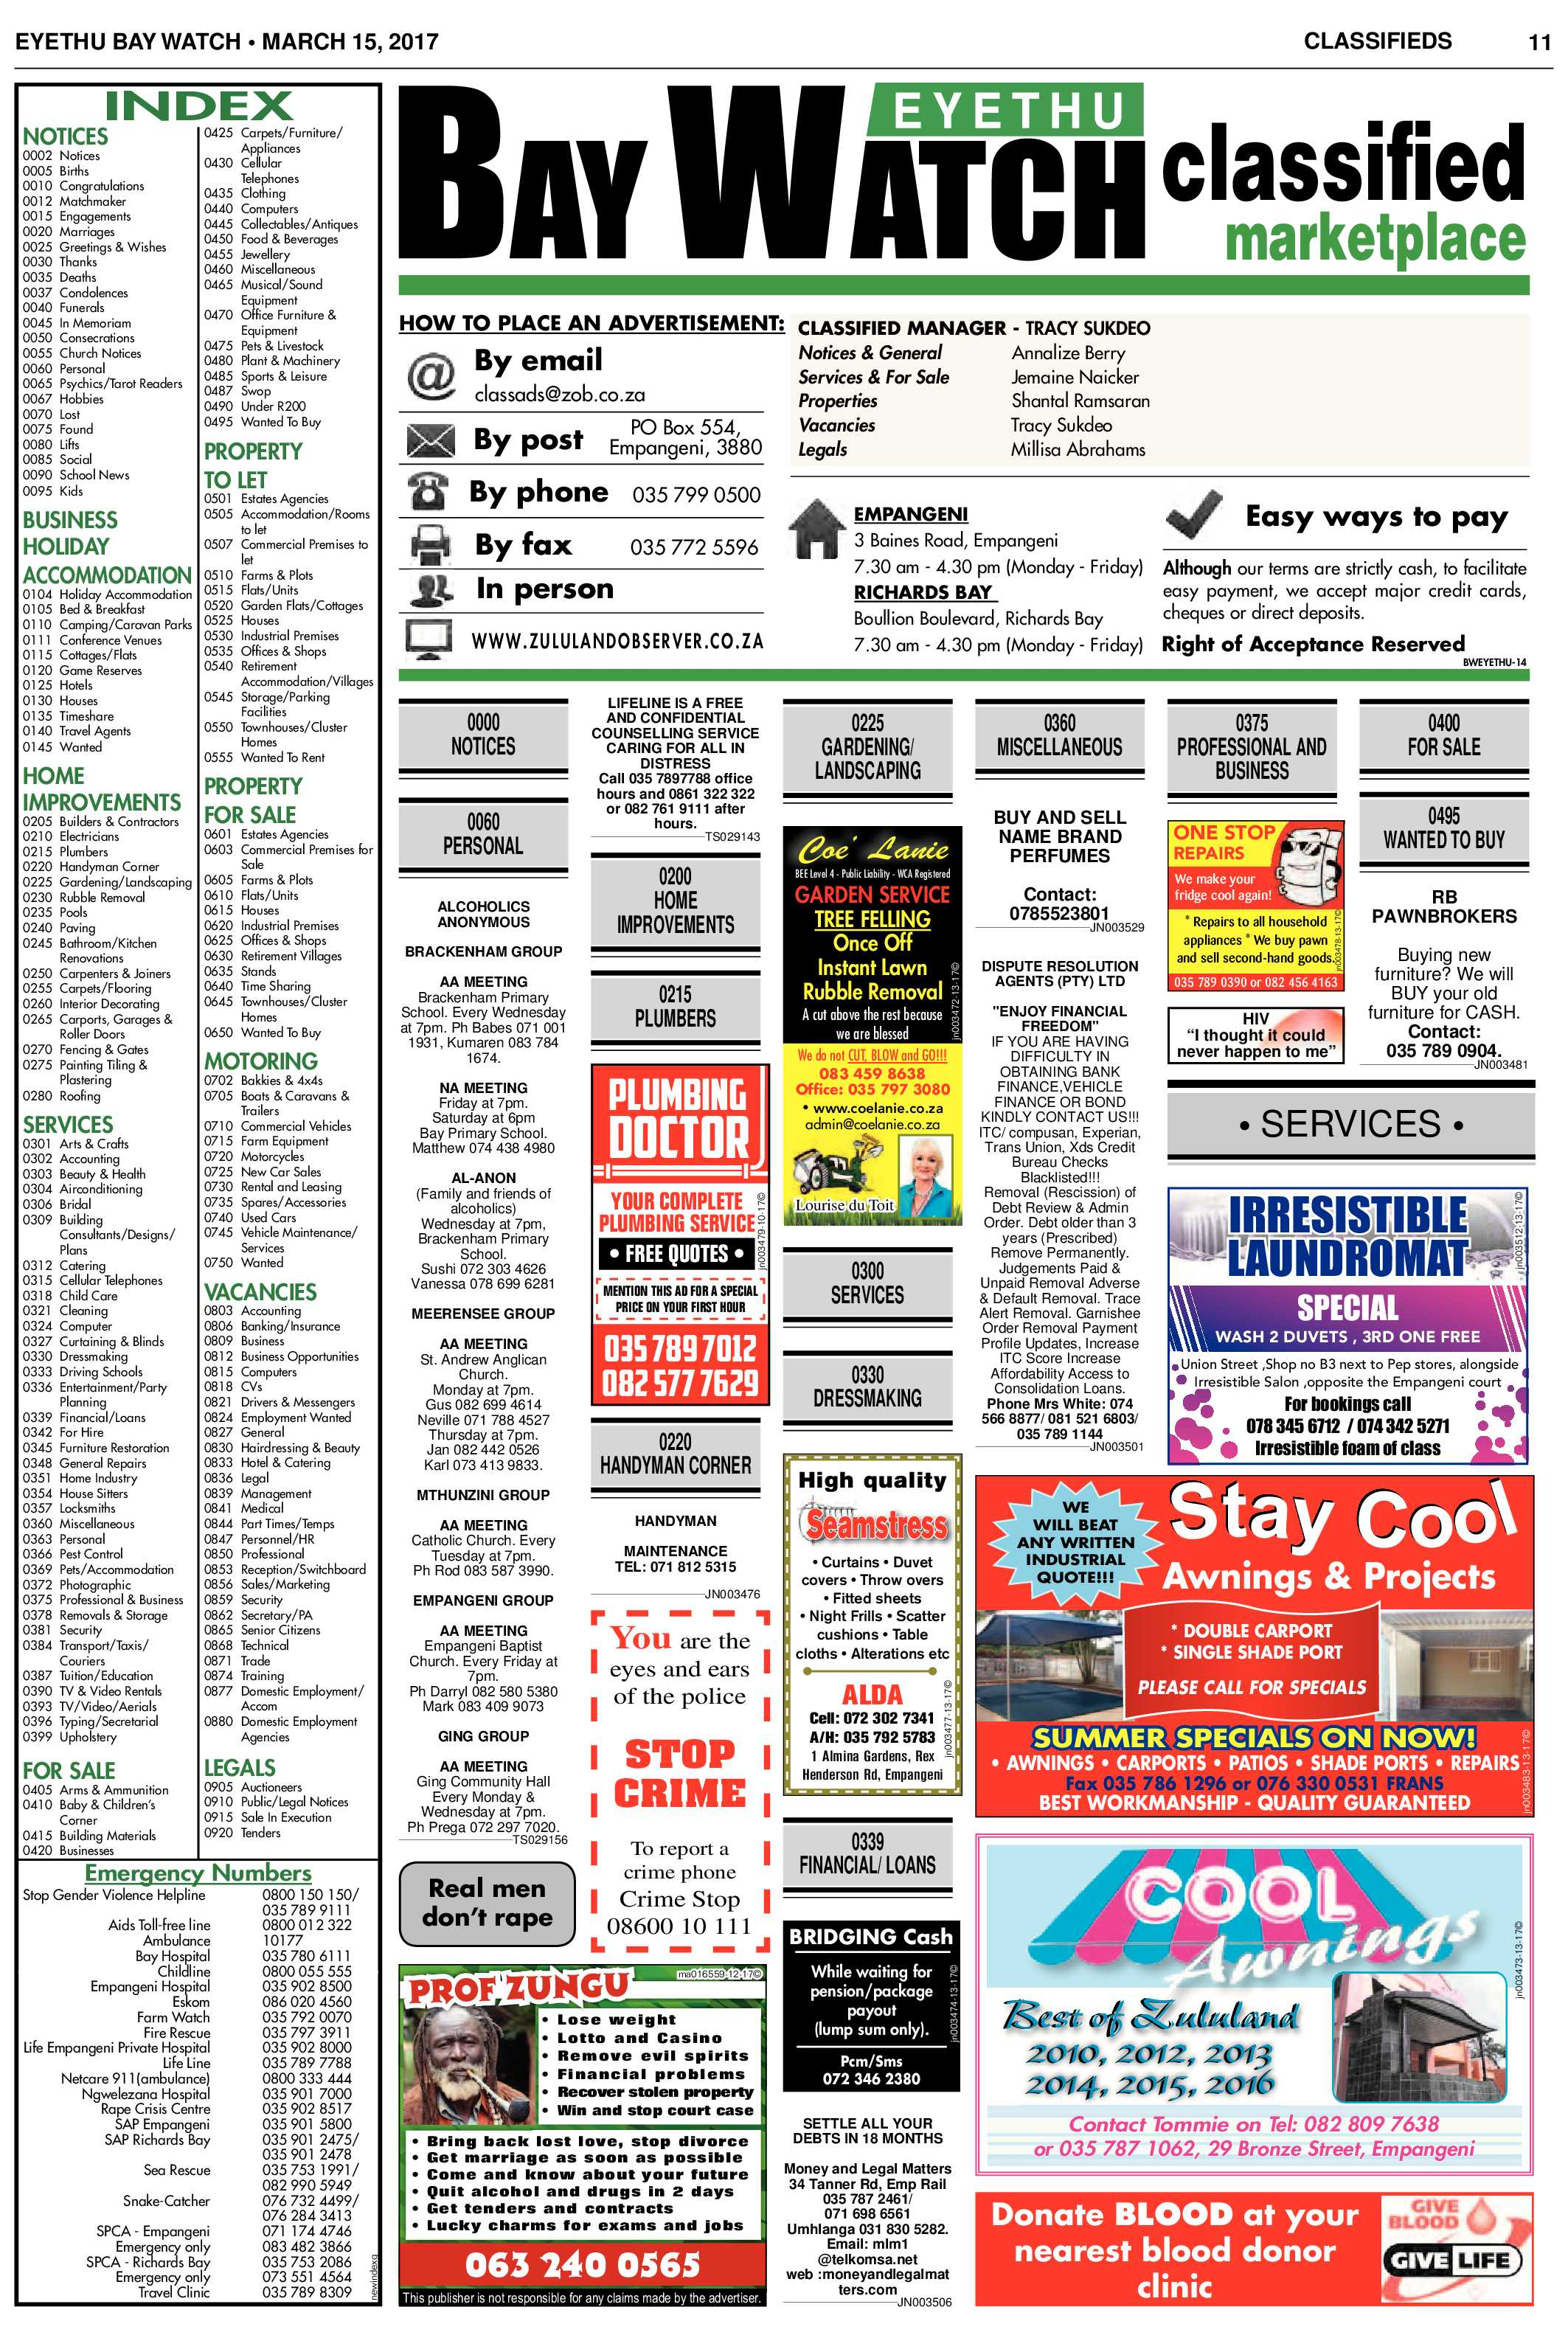 eyethu-baywatch-15-march-epapers-page-11